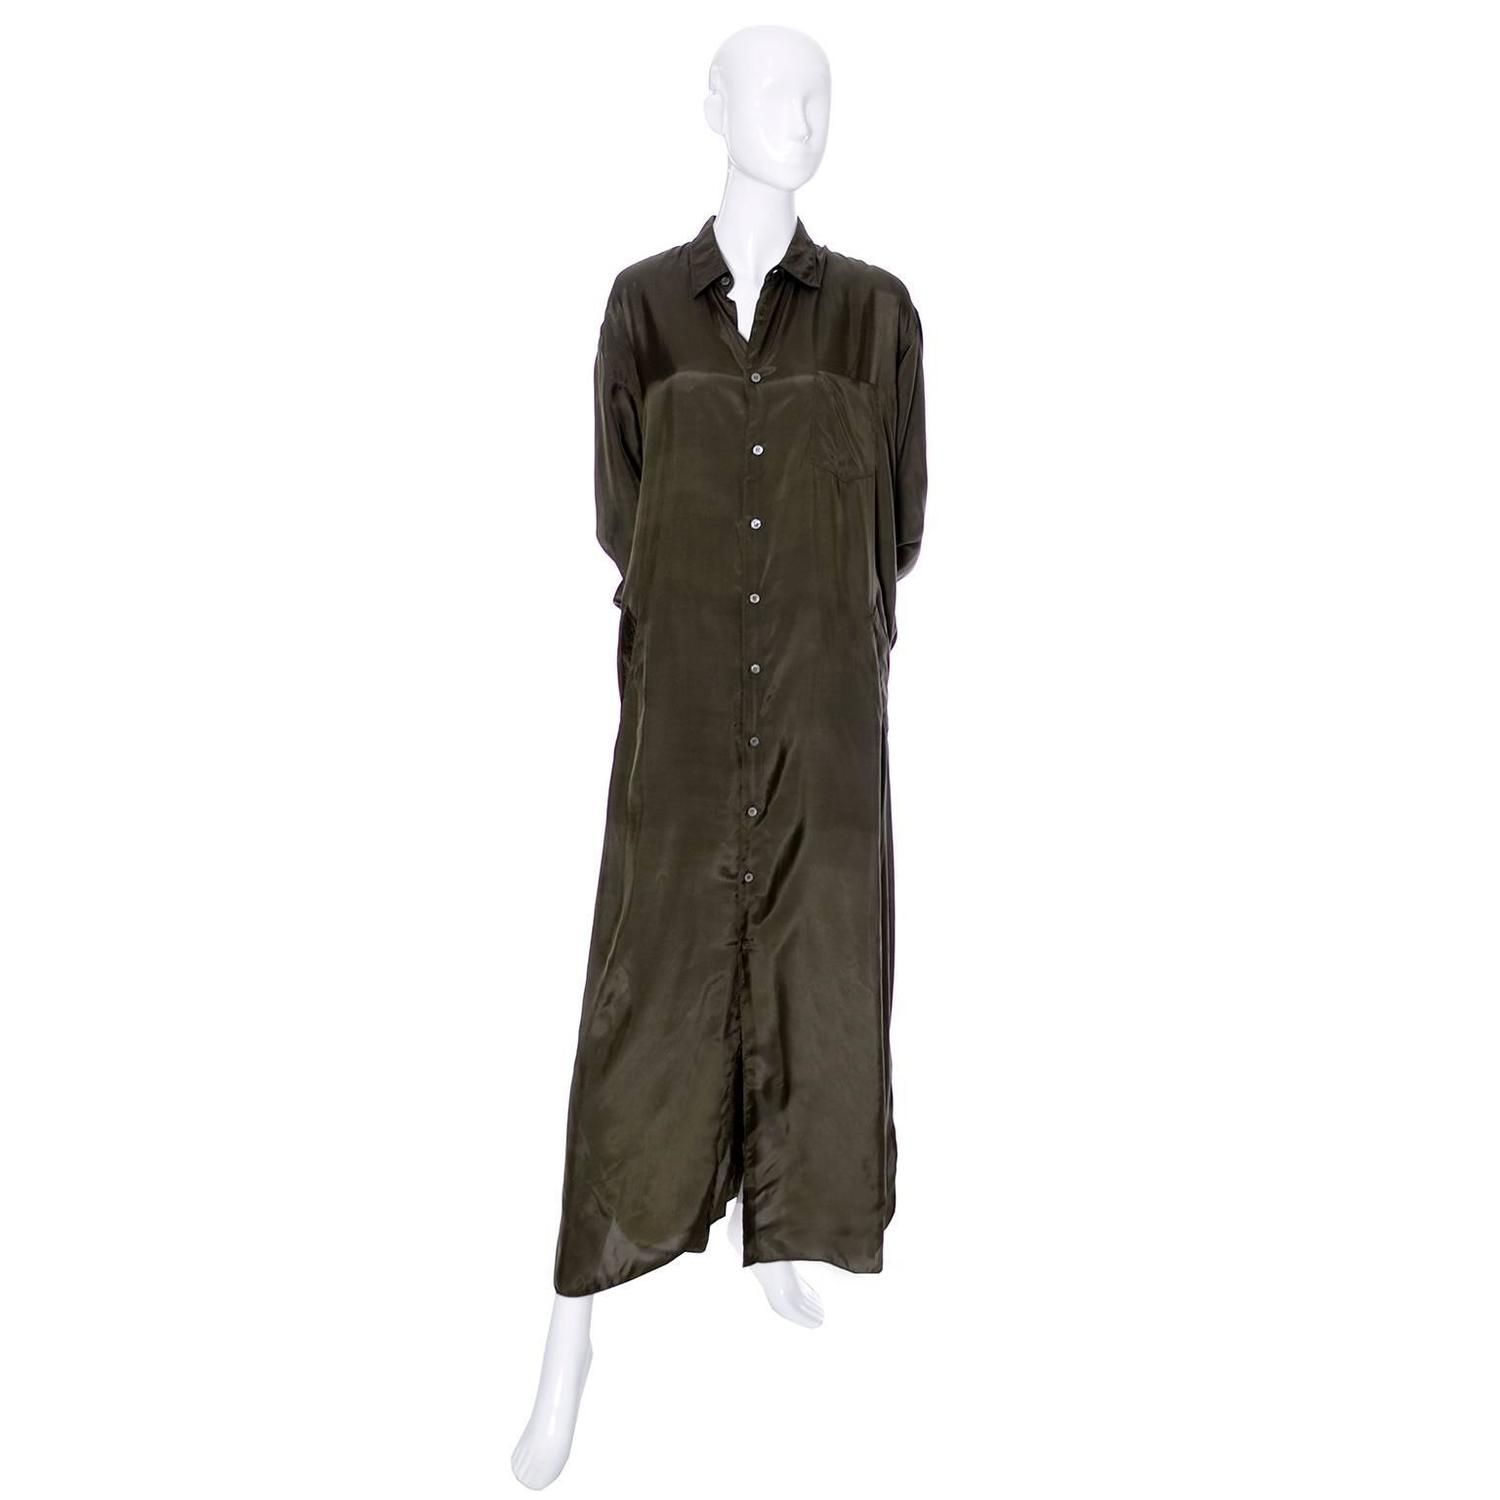 1980s vintage dress or long coat comme des garcons green rayon shirtdress for sale at 1stdibs. Black Bedroom Furniture Sets. Home Design Ideas